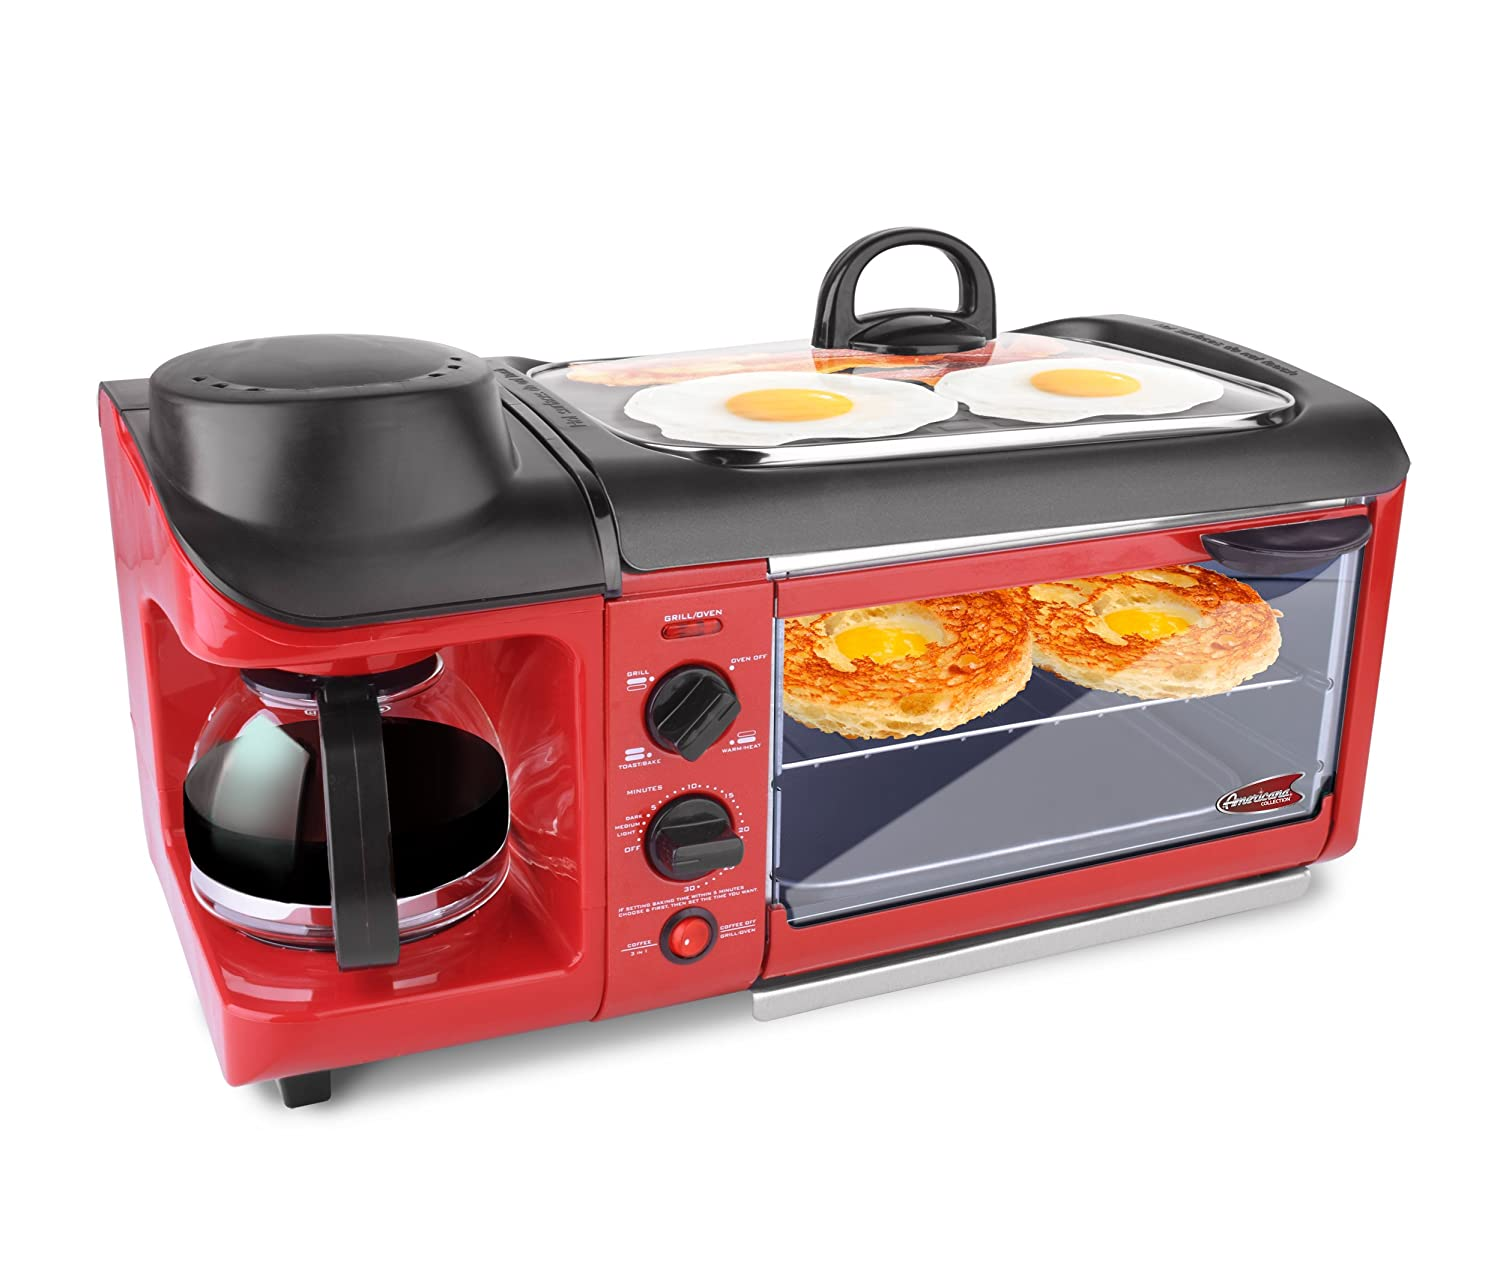 Elite EBK-1782R Maxi-Matic 3-in-1 Deluxe Breakfast Station, Red